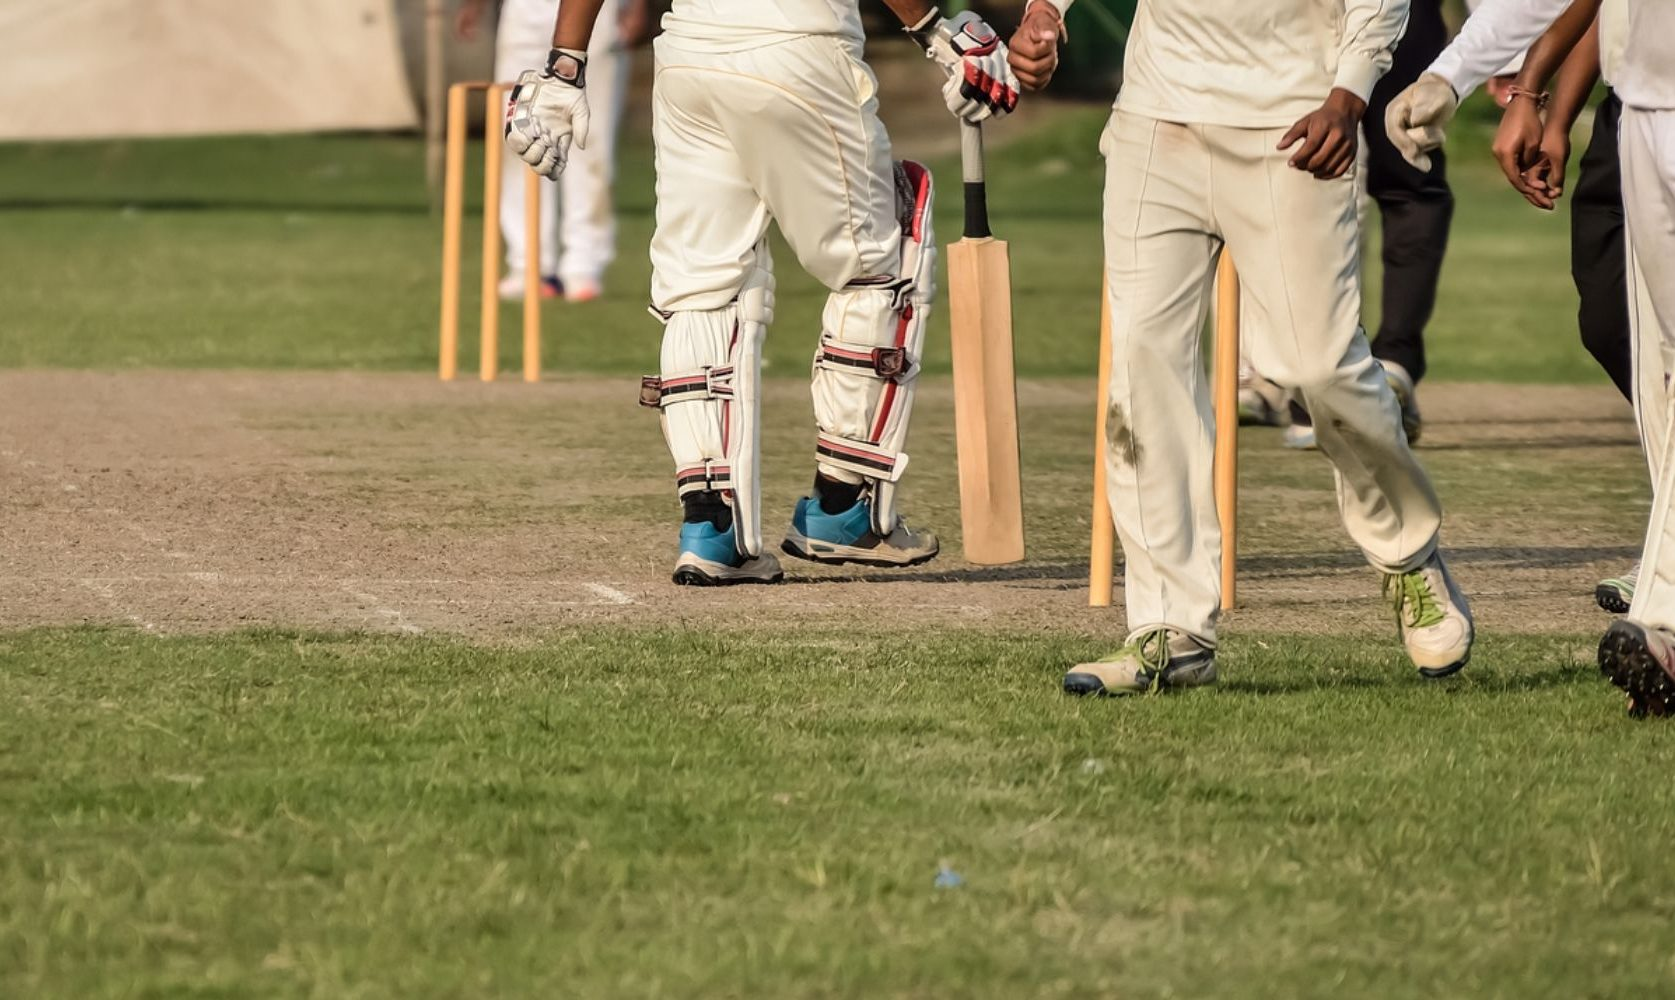 cricket players on the field